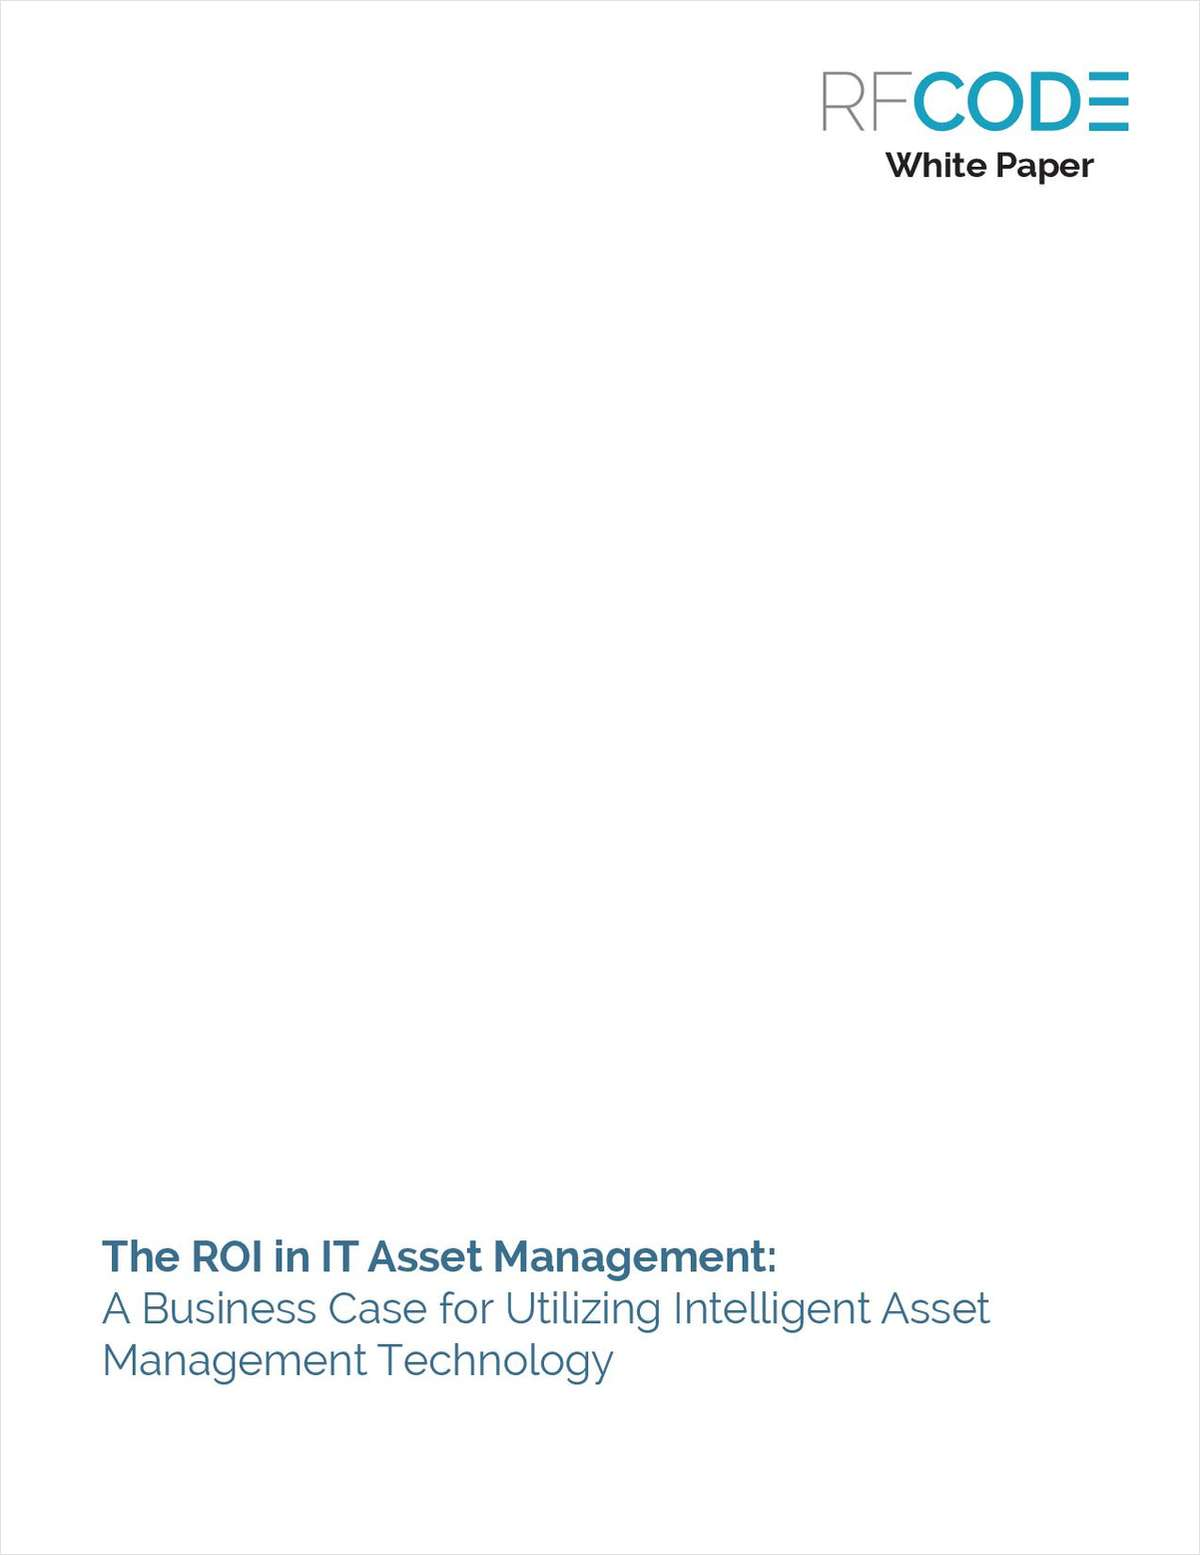 The ROI in IT Asset Management